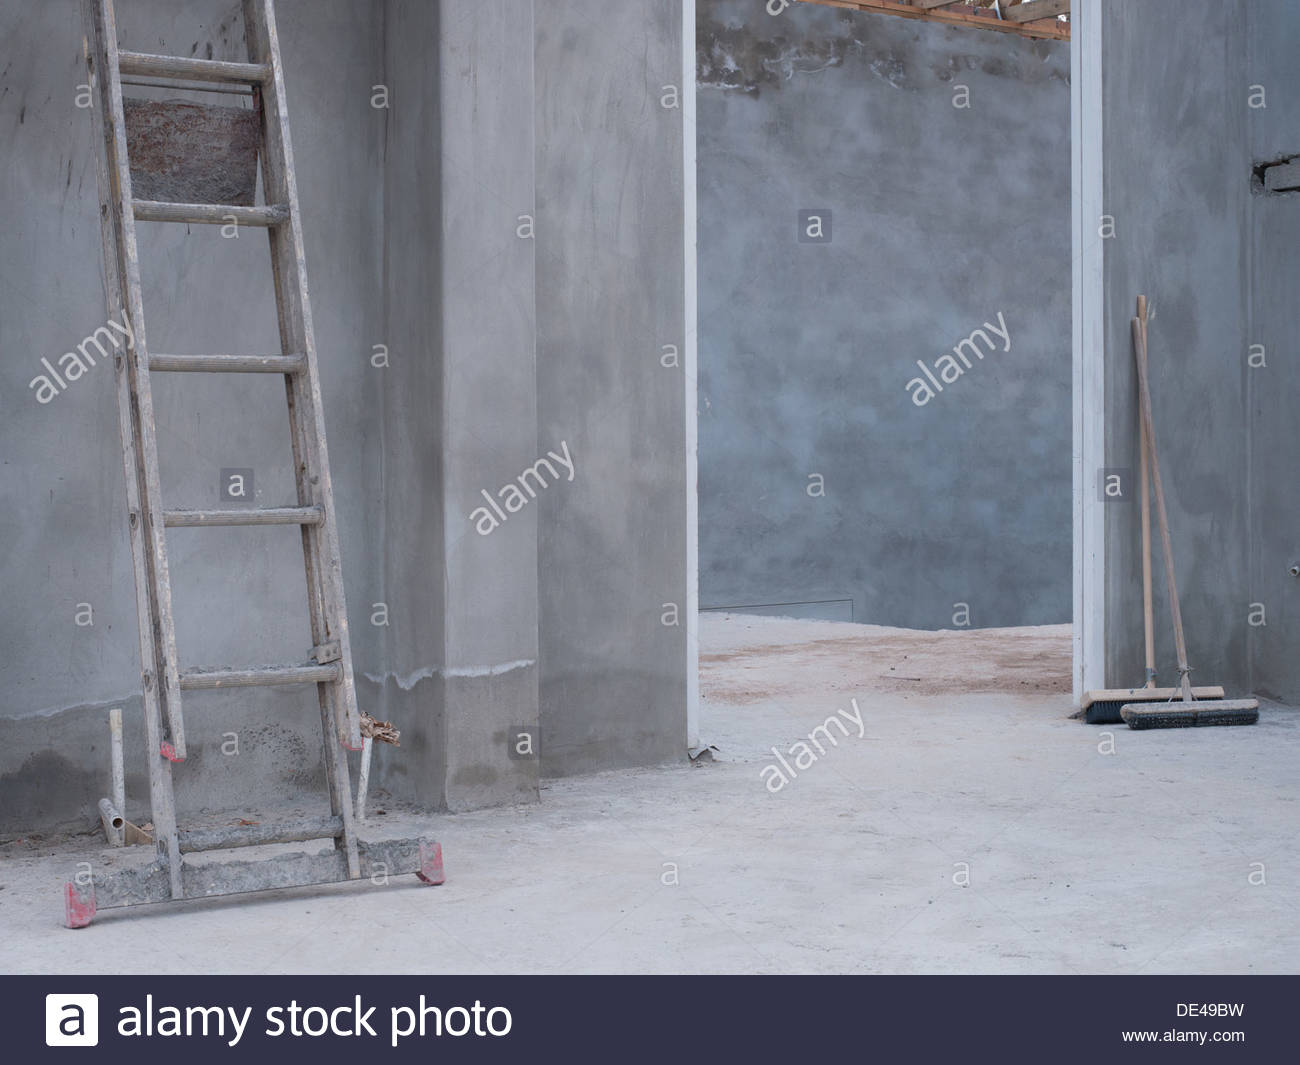 House under construction - Stock Image